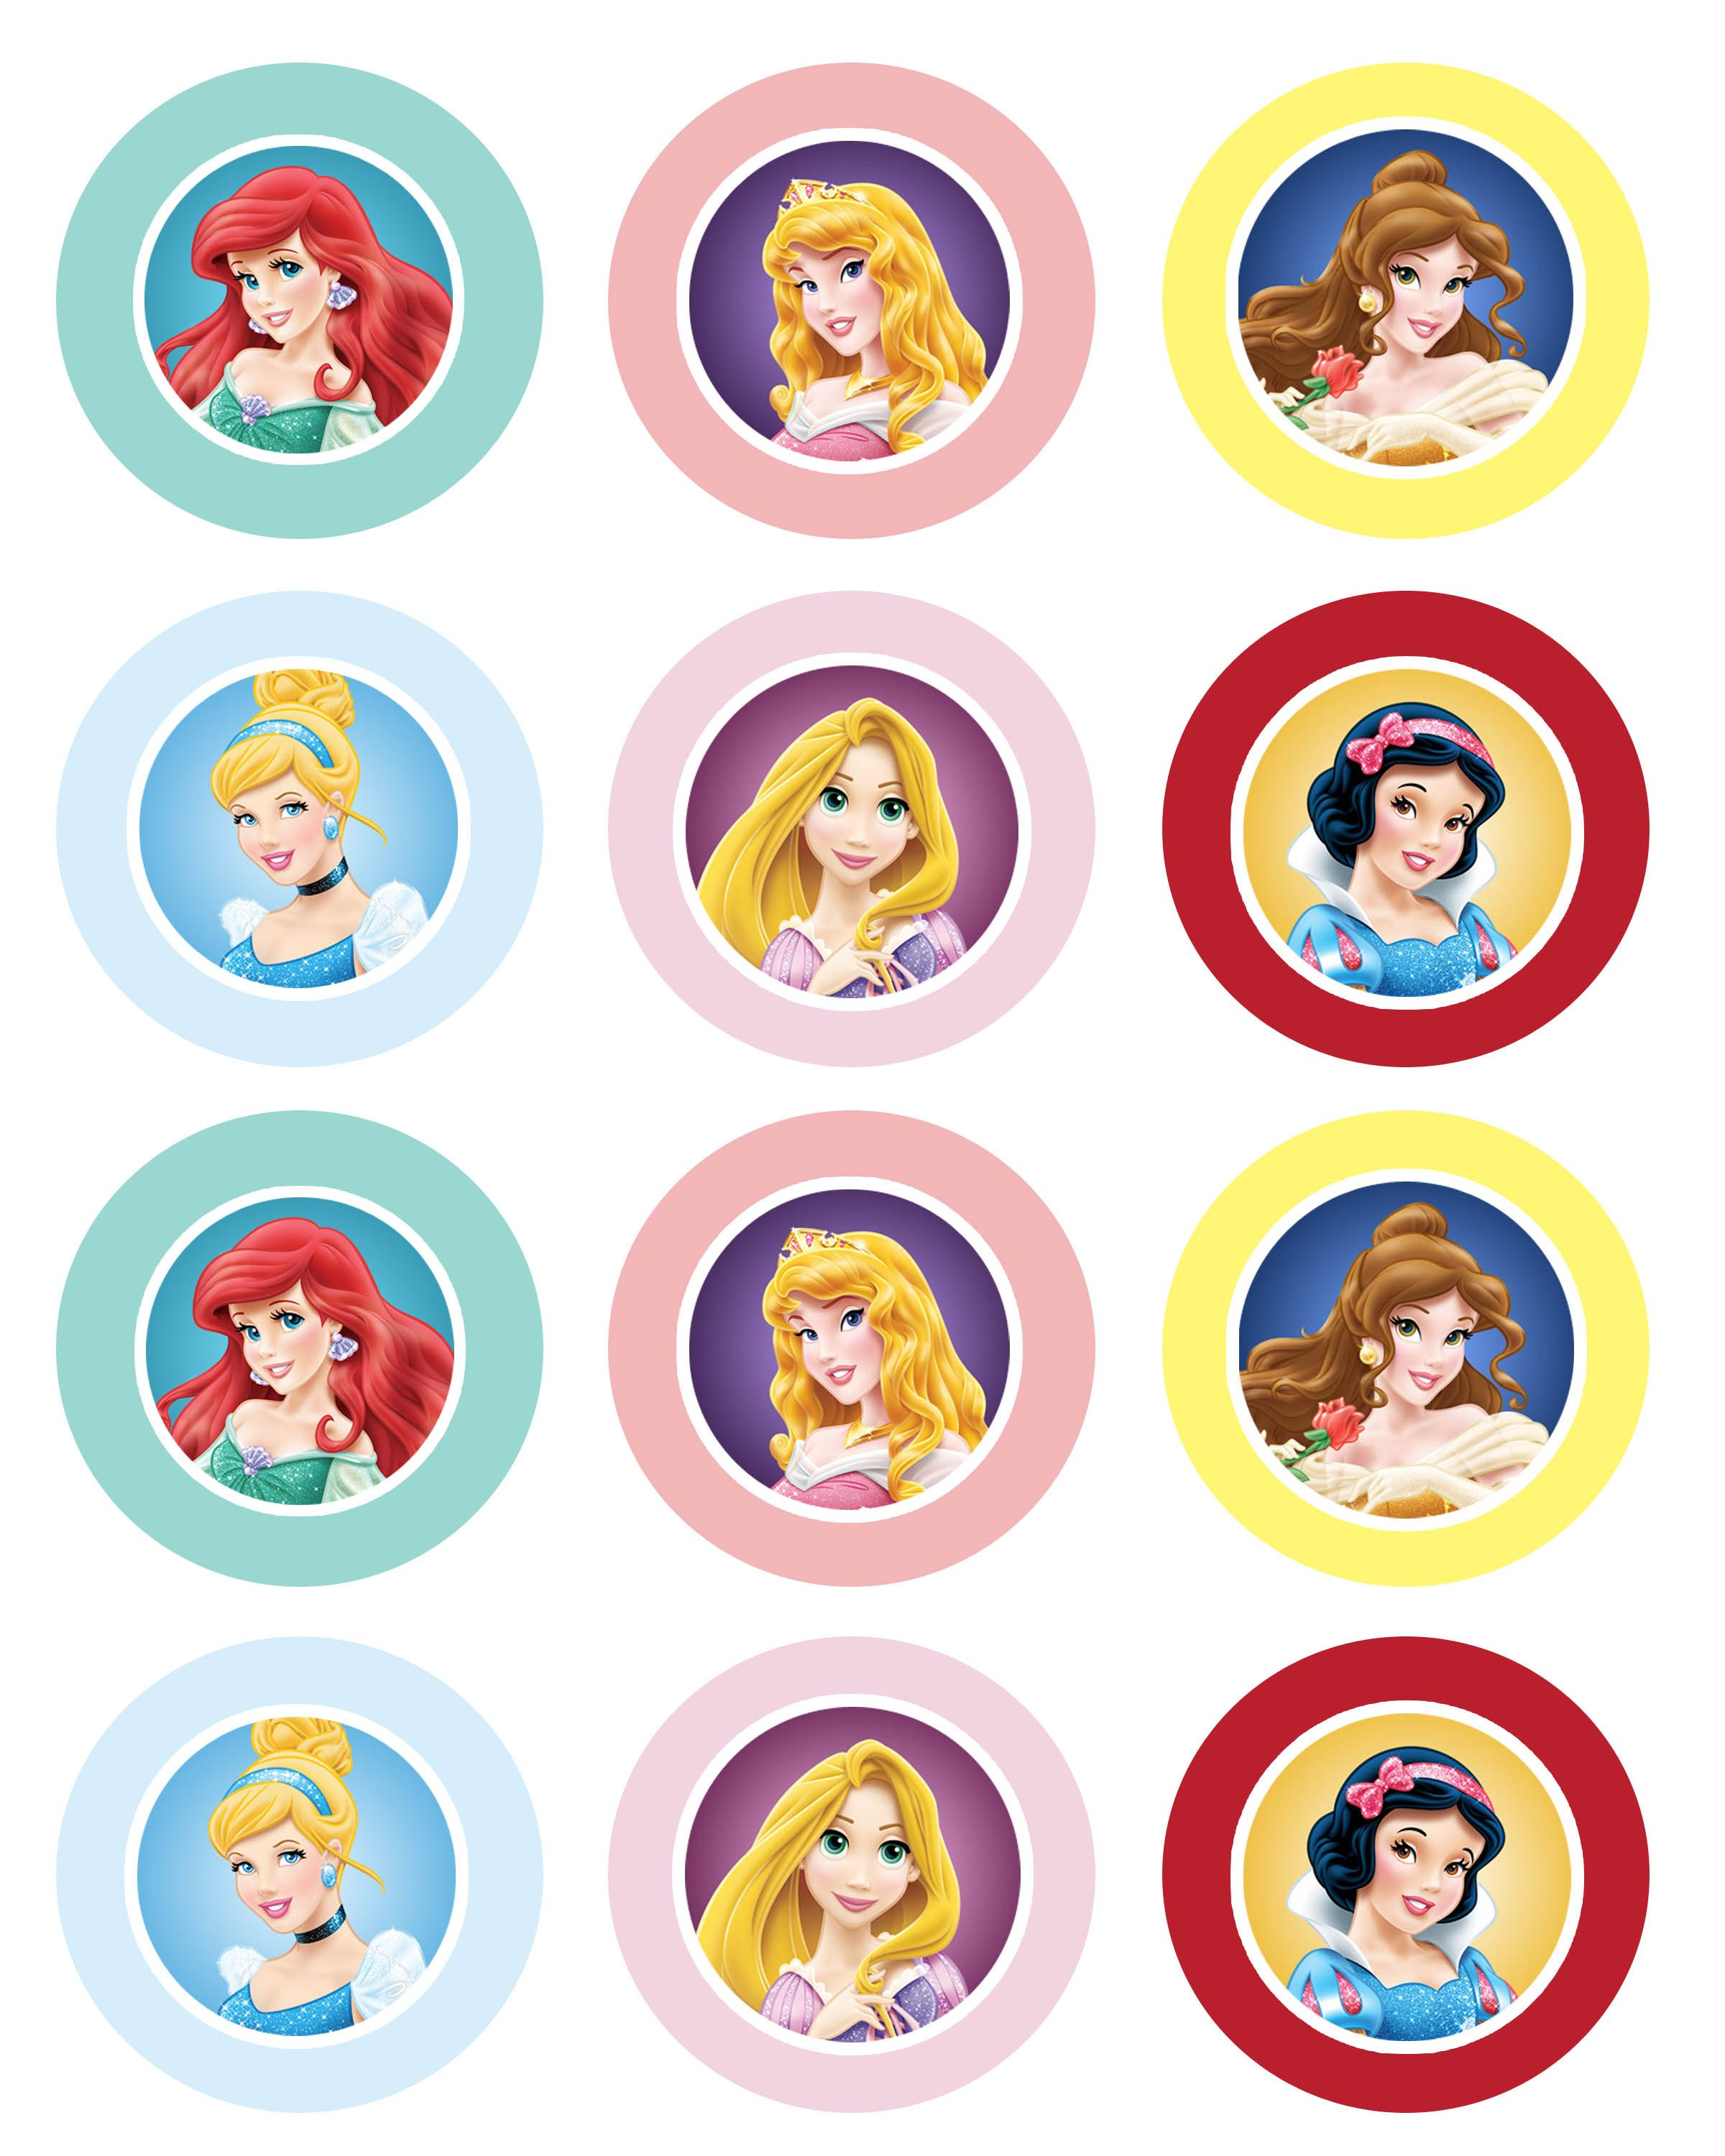 Princess Cupcake Images : Disney Princess Cupcakes and GIVEAWAY Disney princess ...